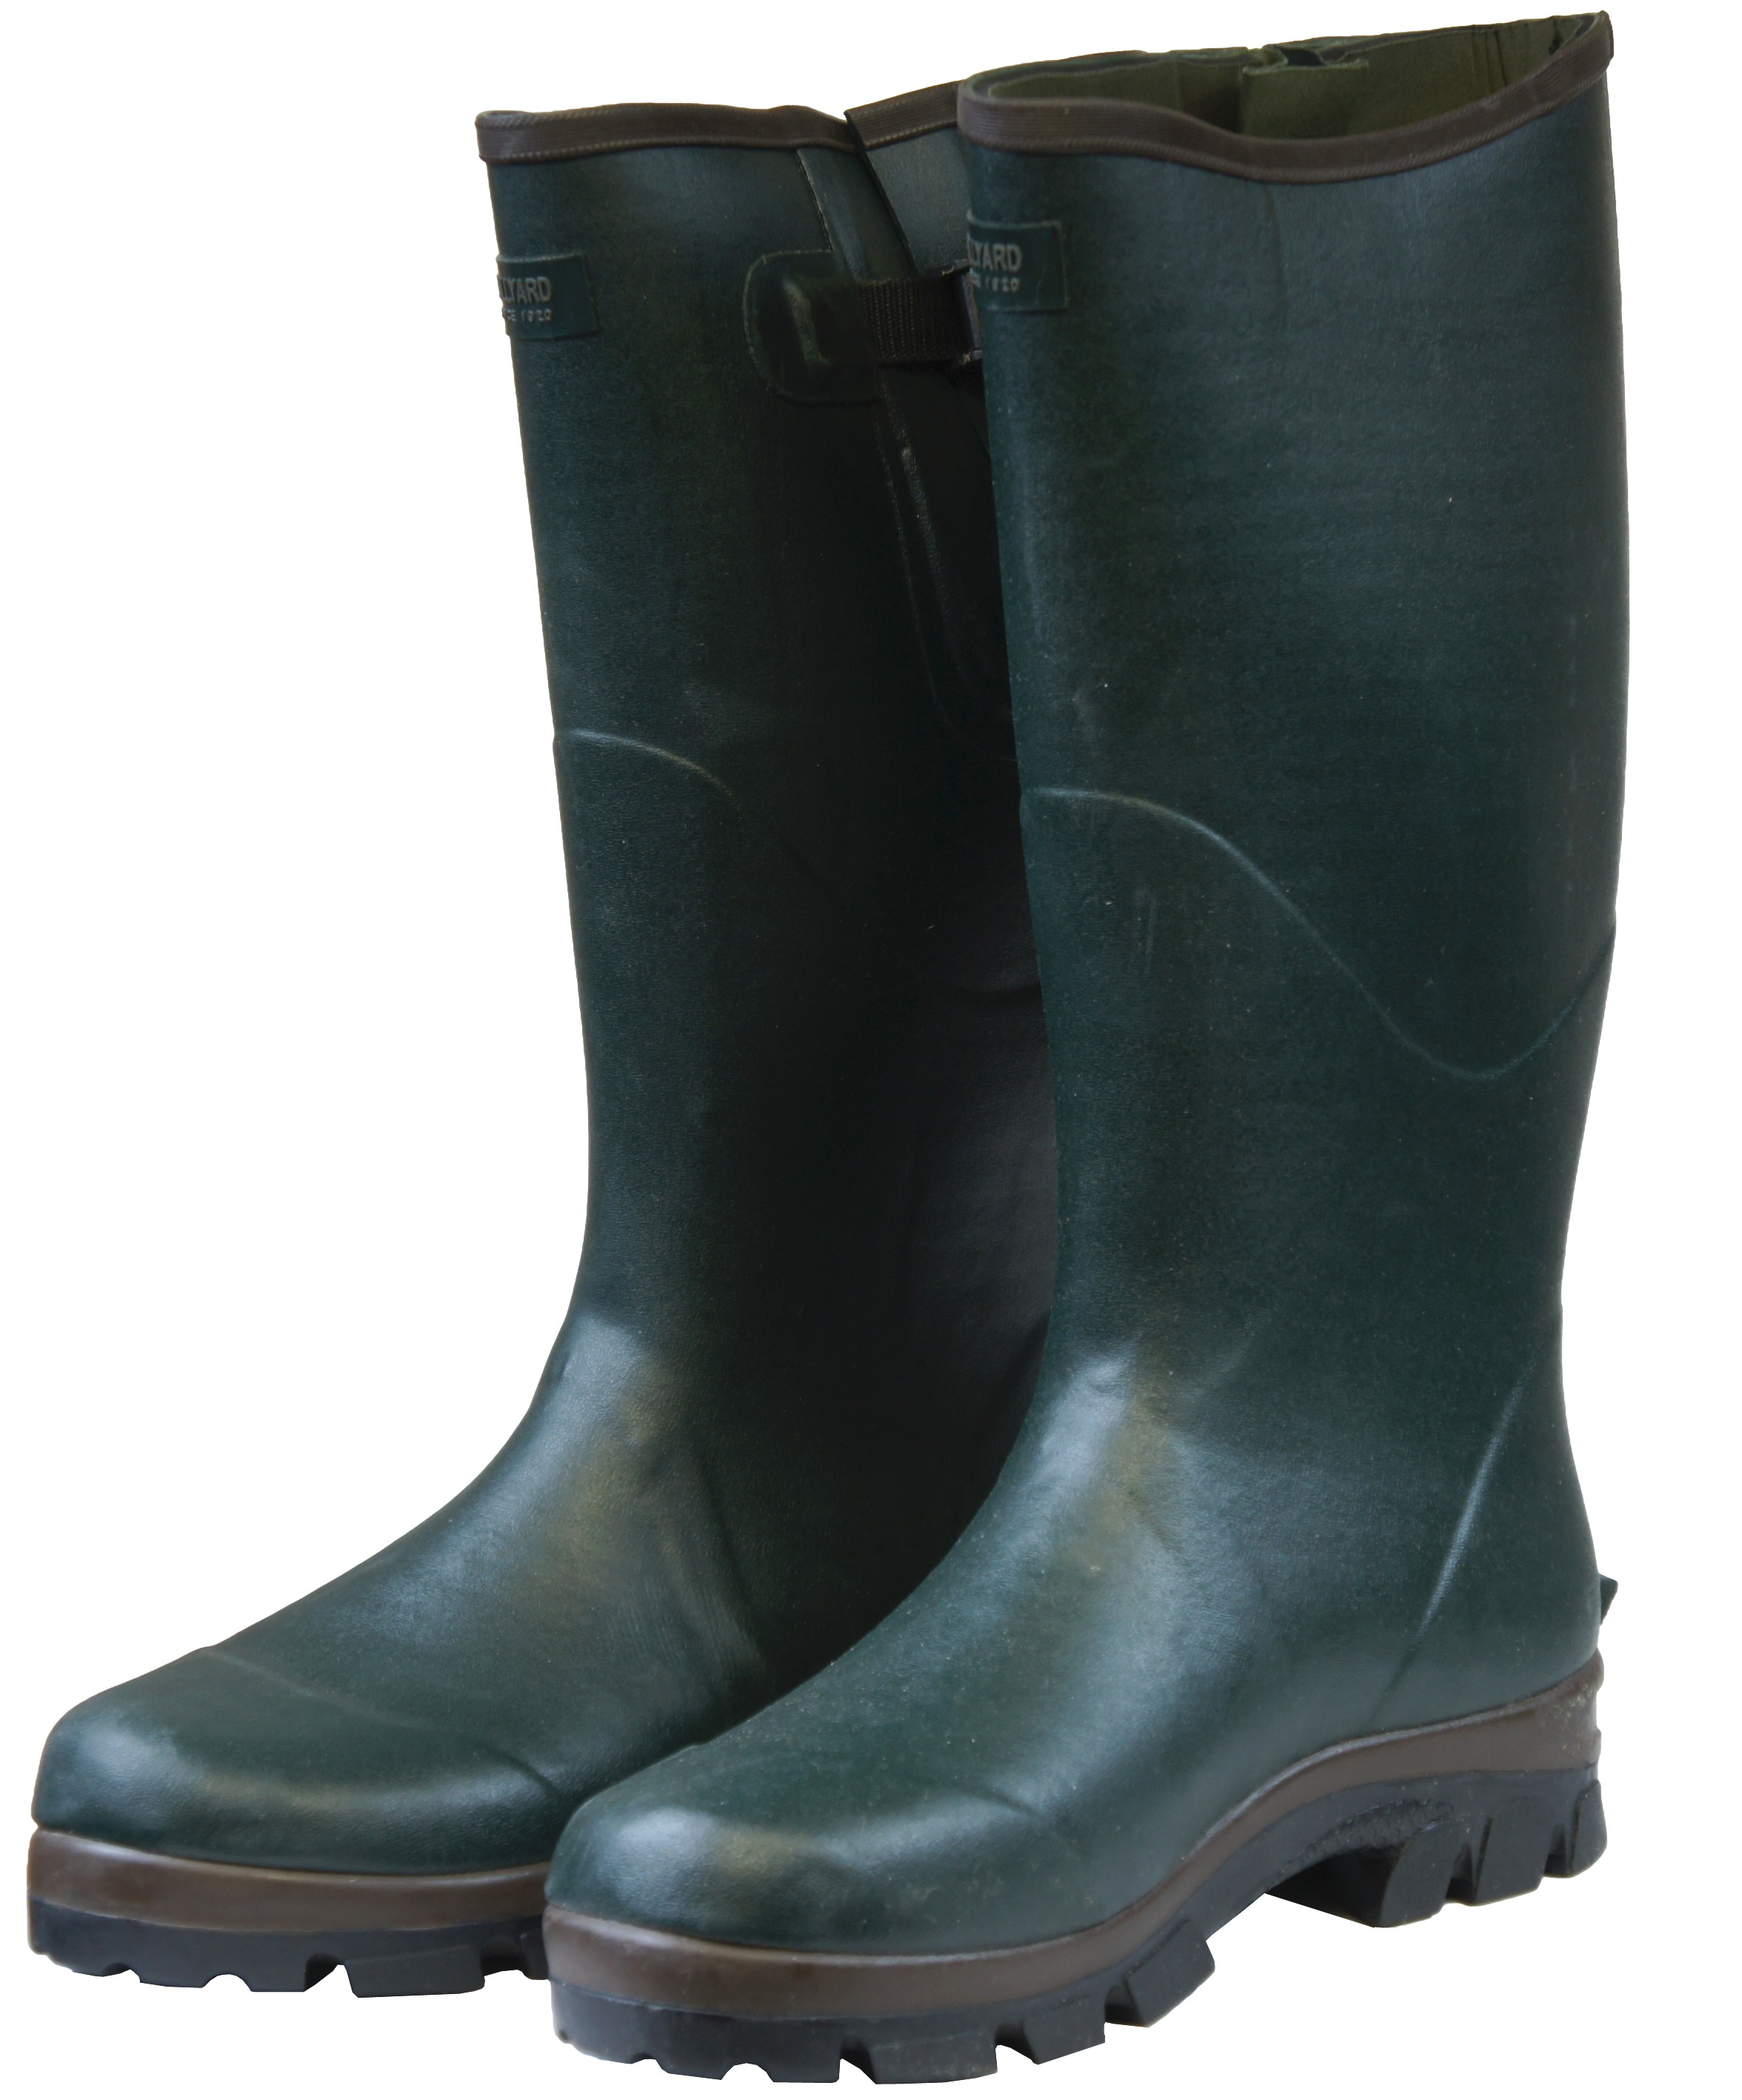 Neoprene Lined Wellington Boots Kit yourself out in ultimate protection against the cold in our impressive range of quality, neoprene lined wellies available for both men and women - beautifully designed to ensure that feet remain warm and protected against the harshest of weather conditions.